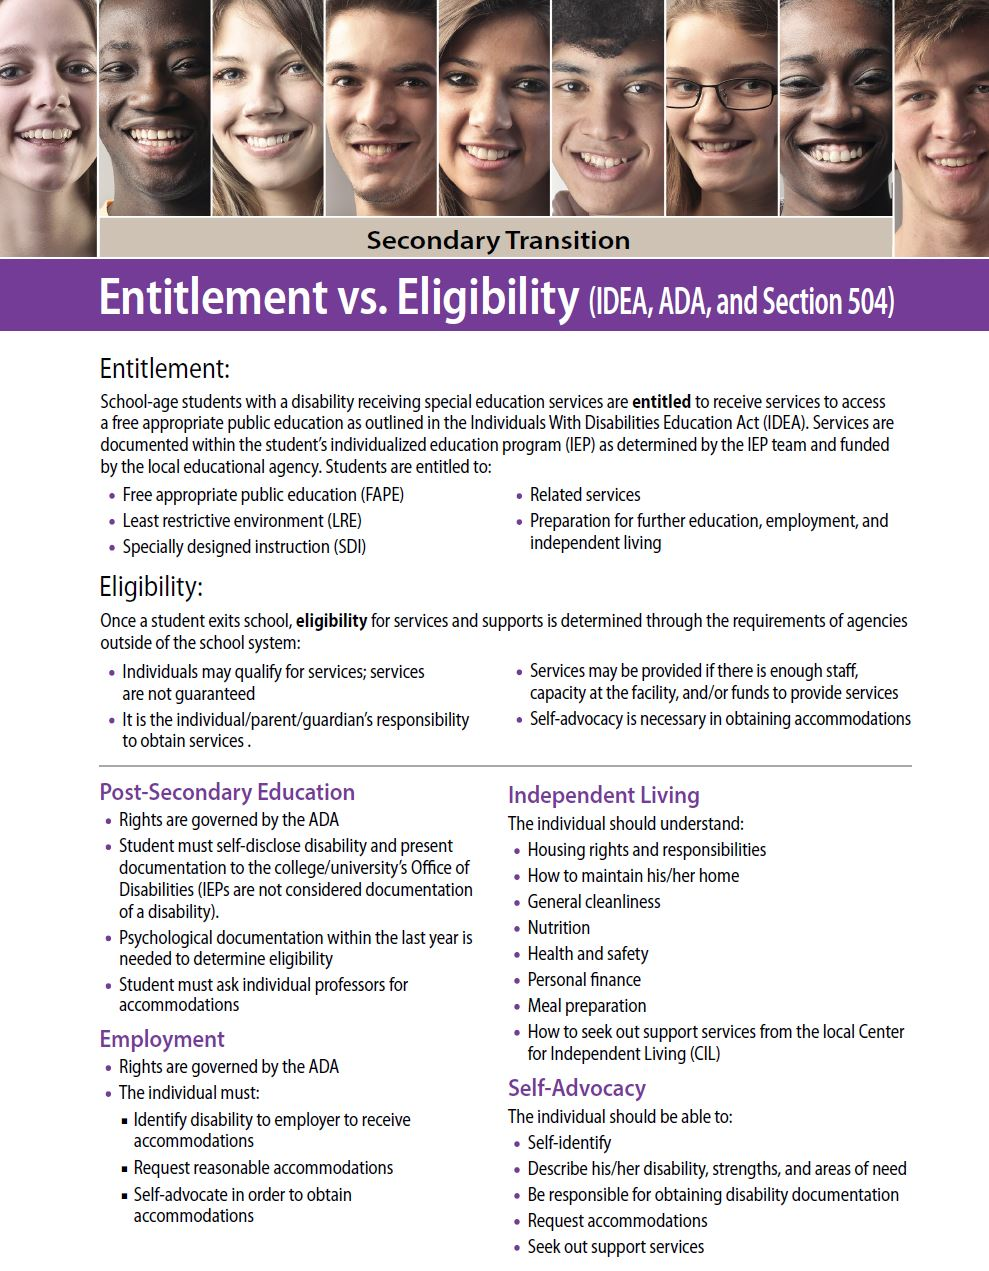 Secondary Transition: Entitlement vs. Eligibility